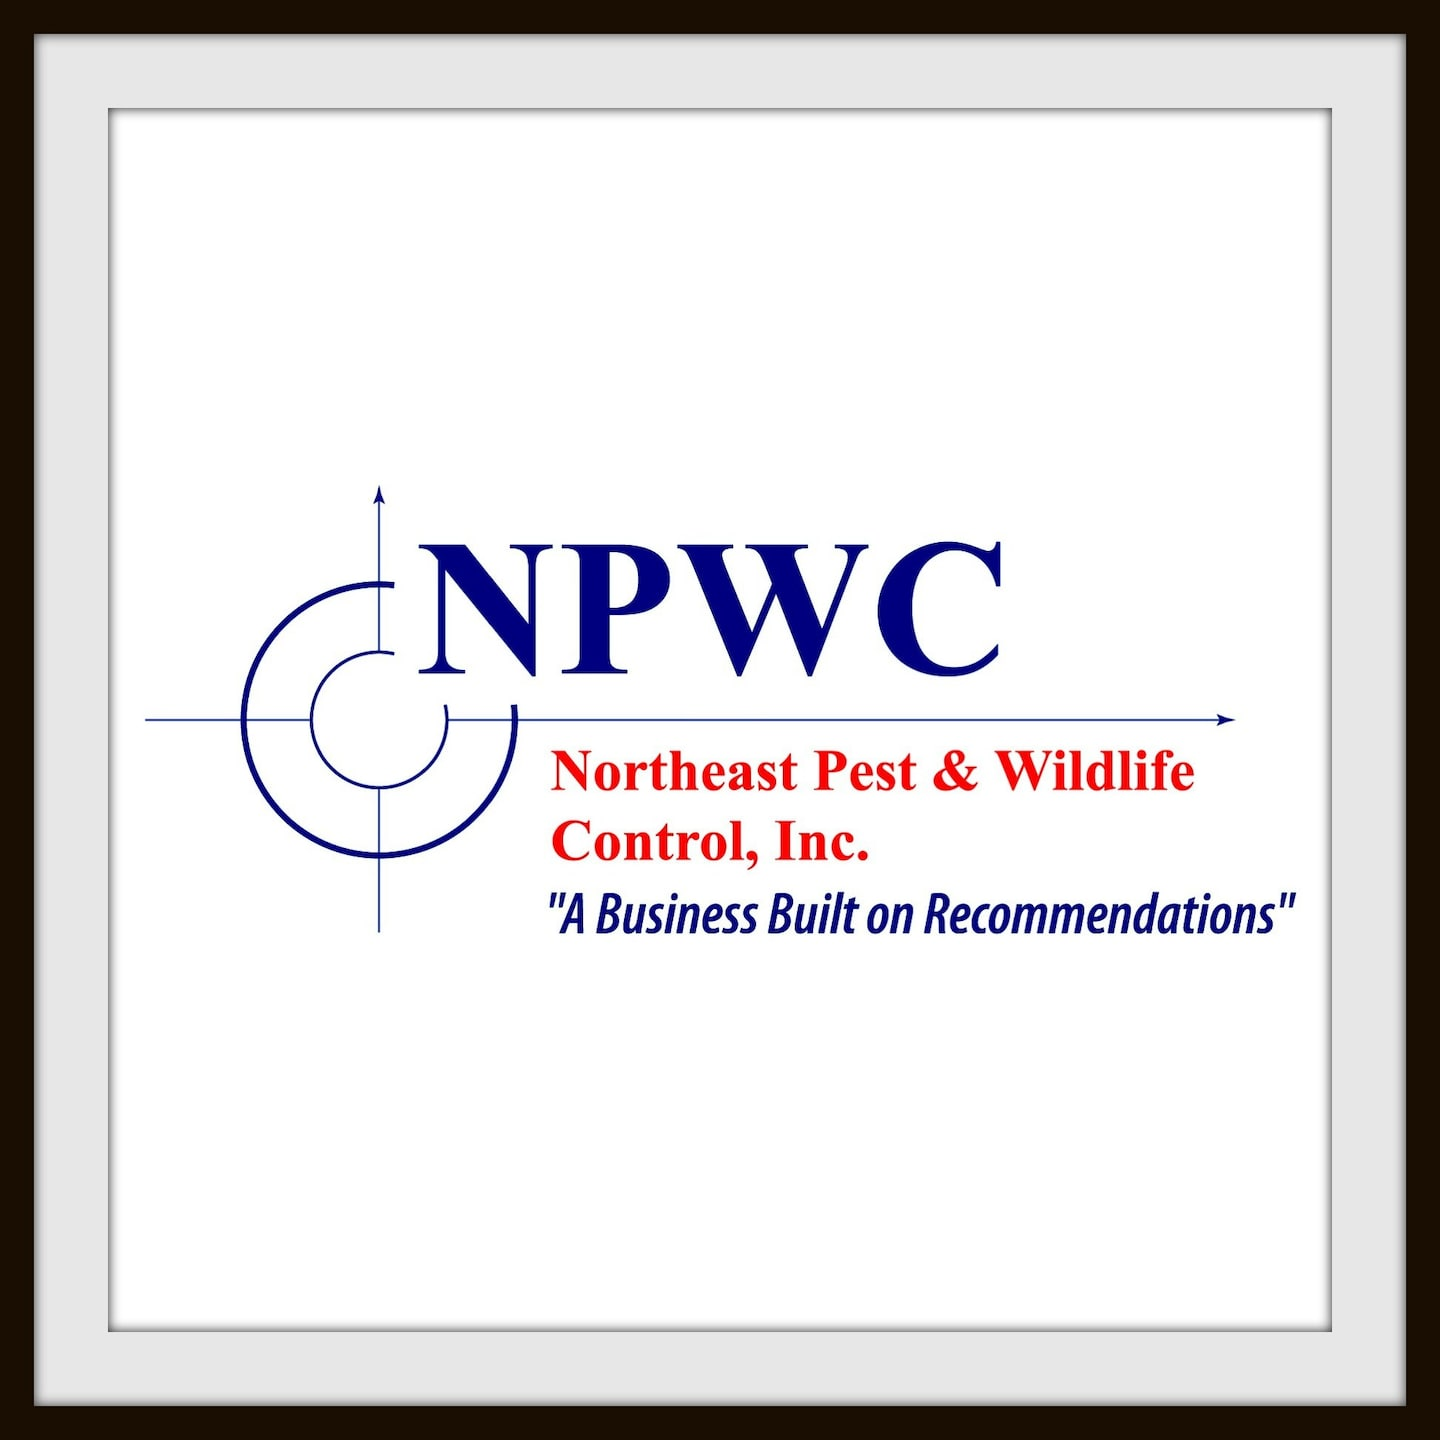 Northeast Pest & Wildlife Control, Inc.